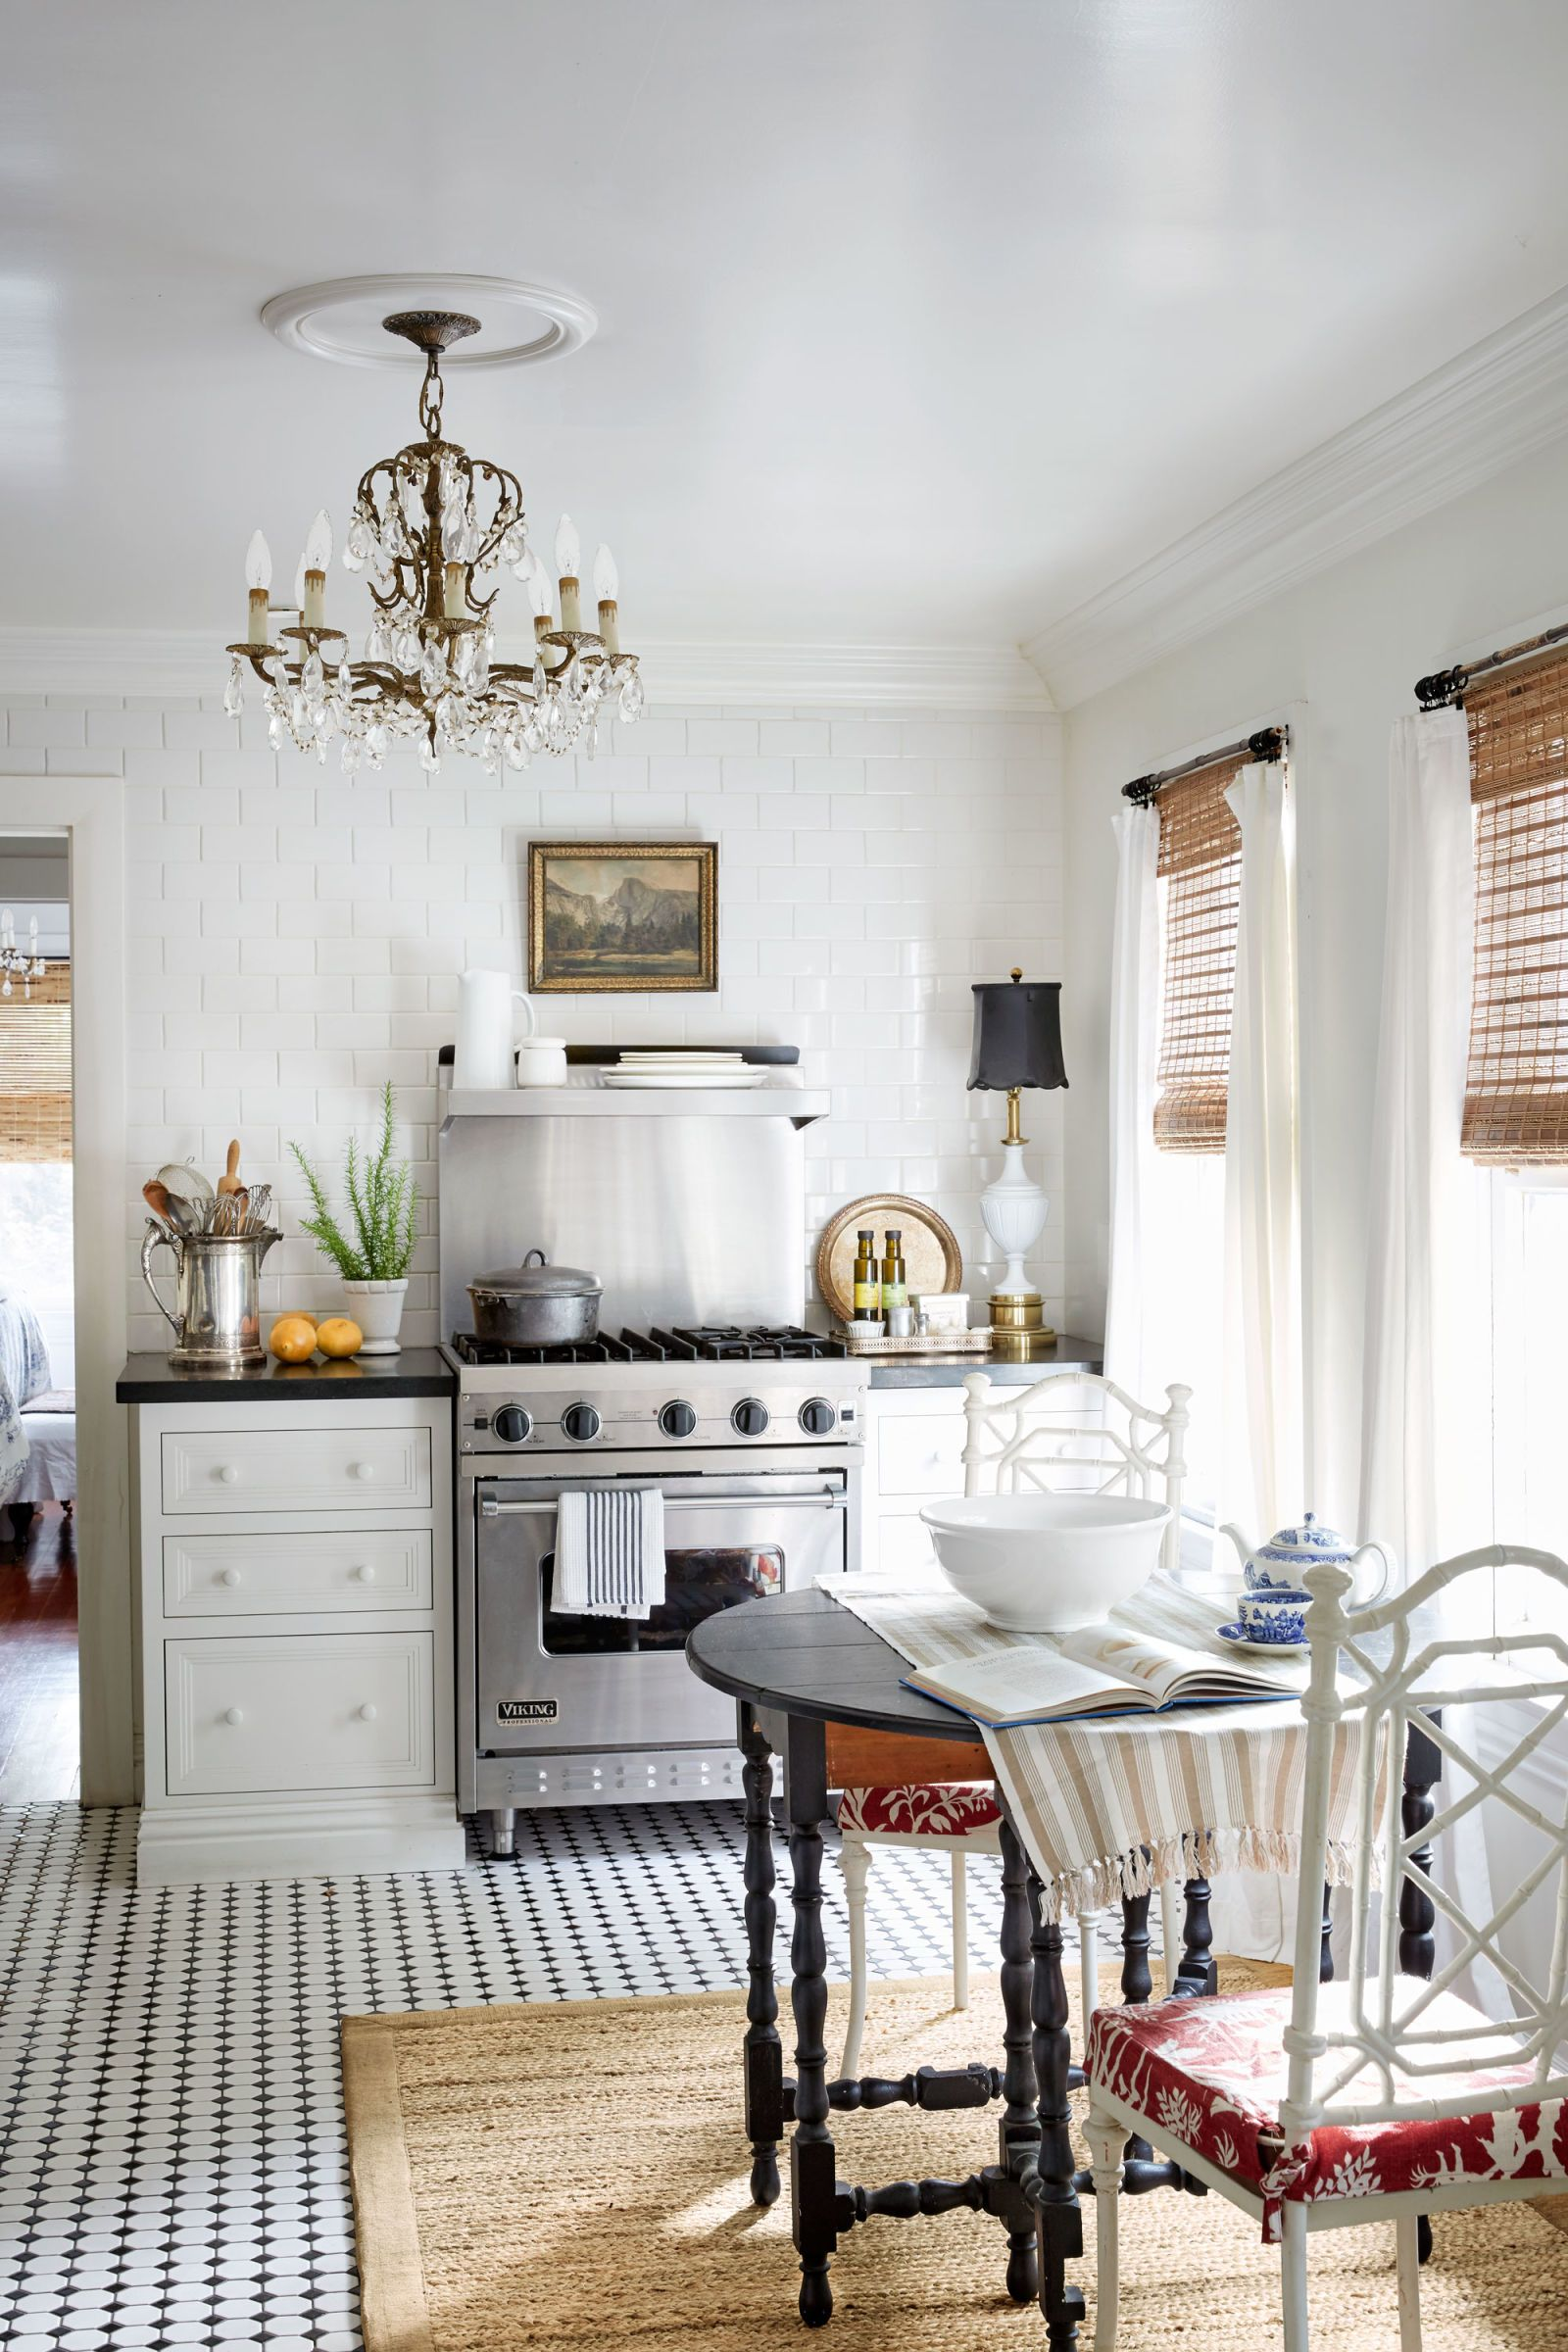 10 Must Follow Rules For Making A Small Space Beautiful